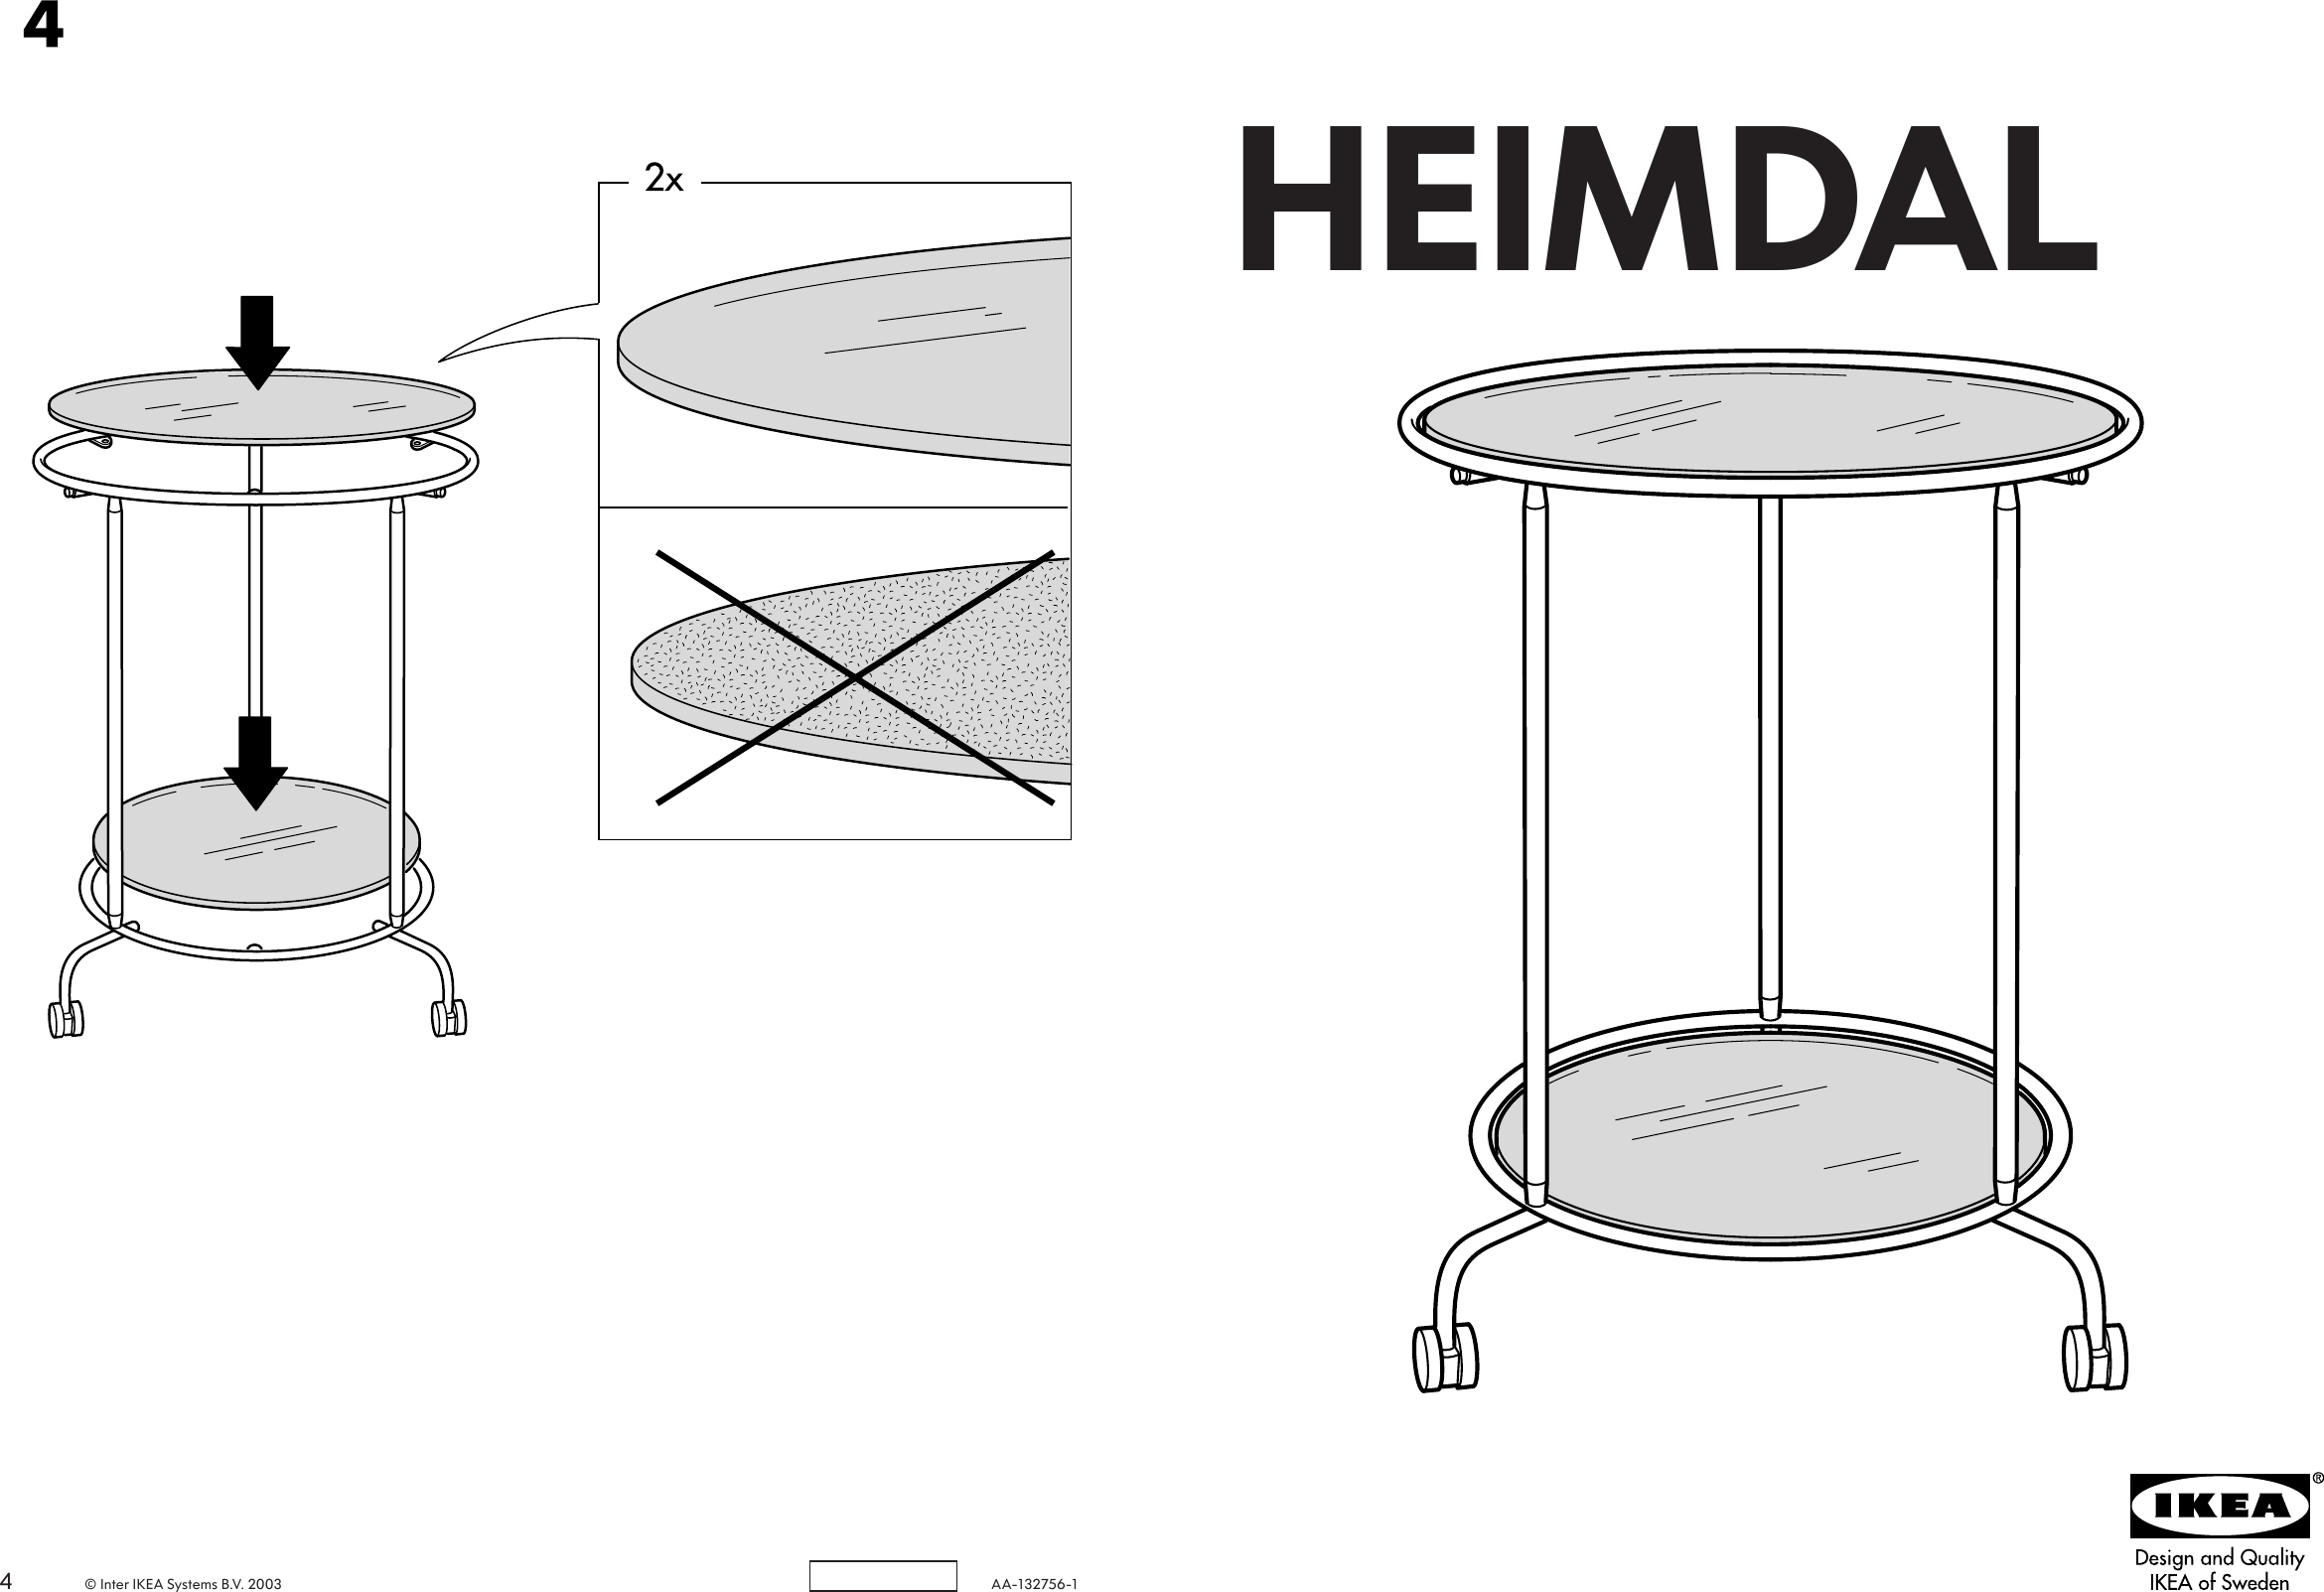 ikea heimdal table 19 5 8 assembly instruction rh usermanual wiki IKEA Heimdal Full Size IKEA Heimdal Bed Assembly Directions